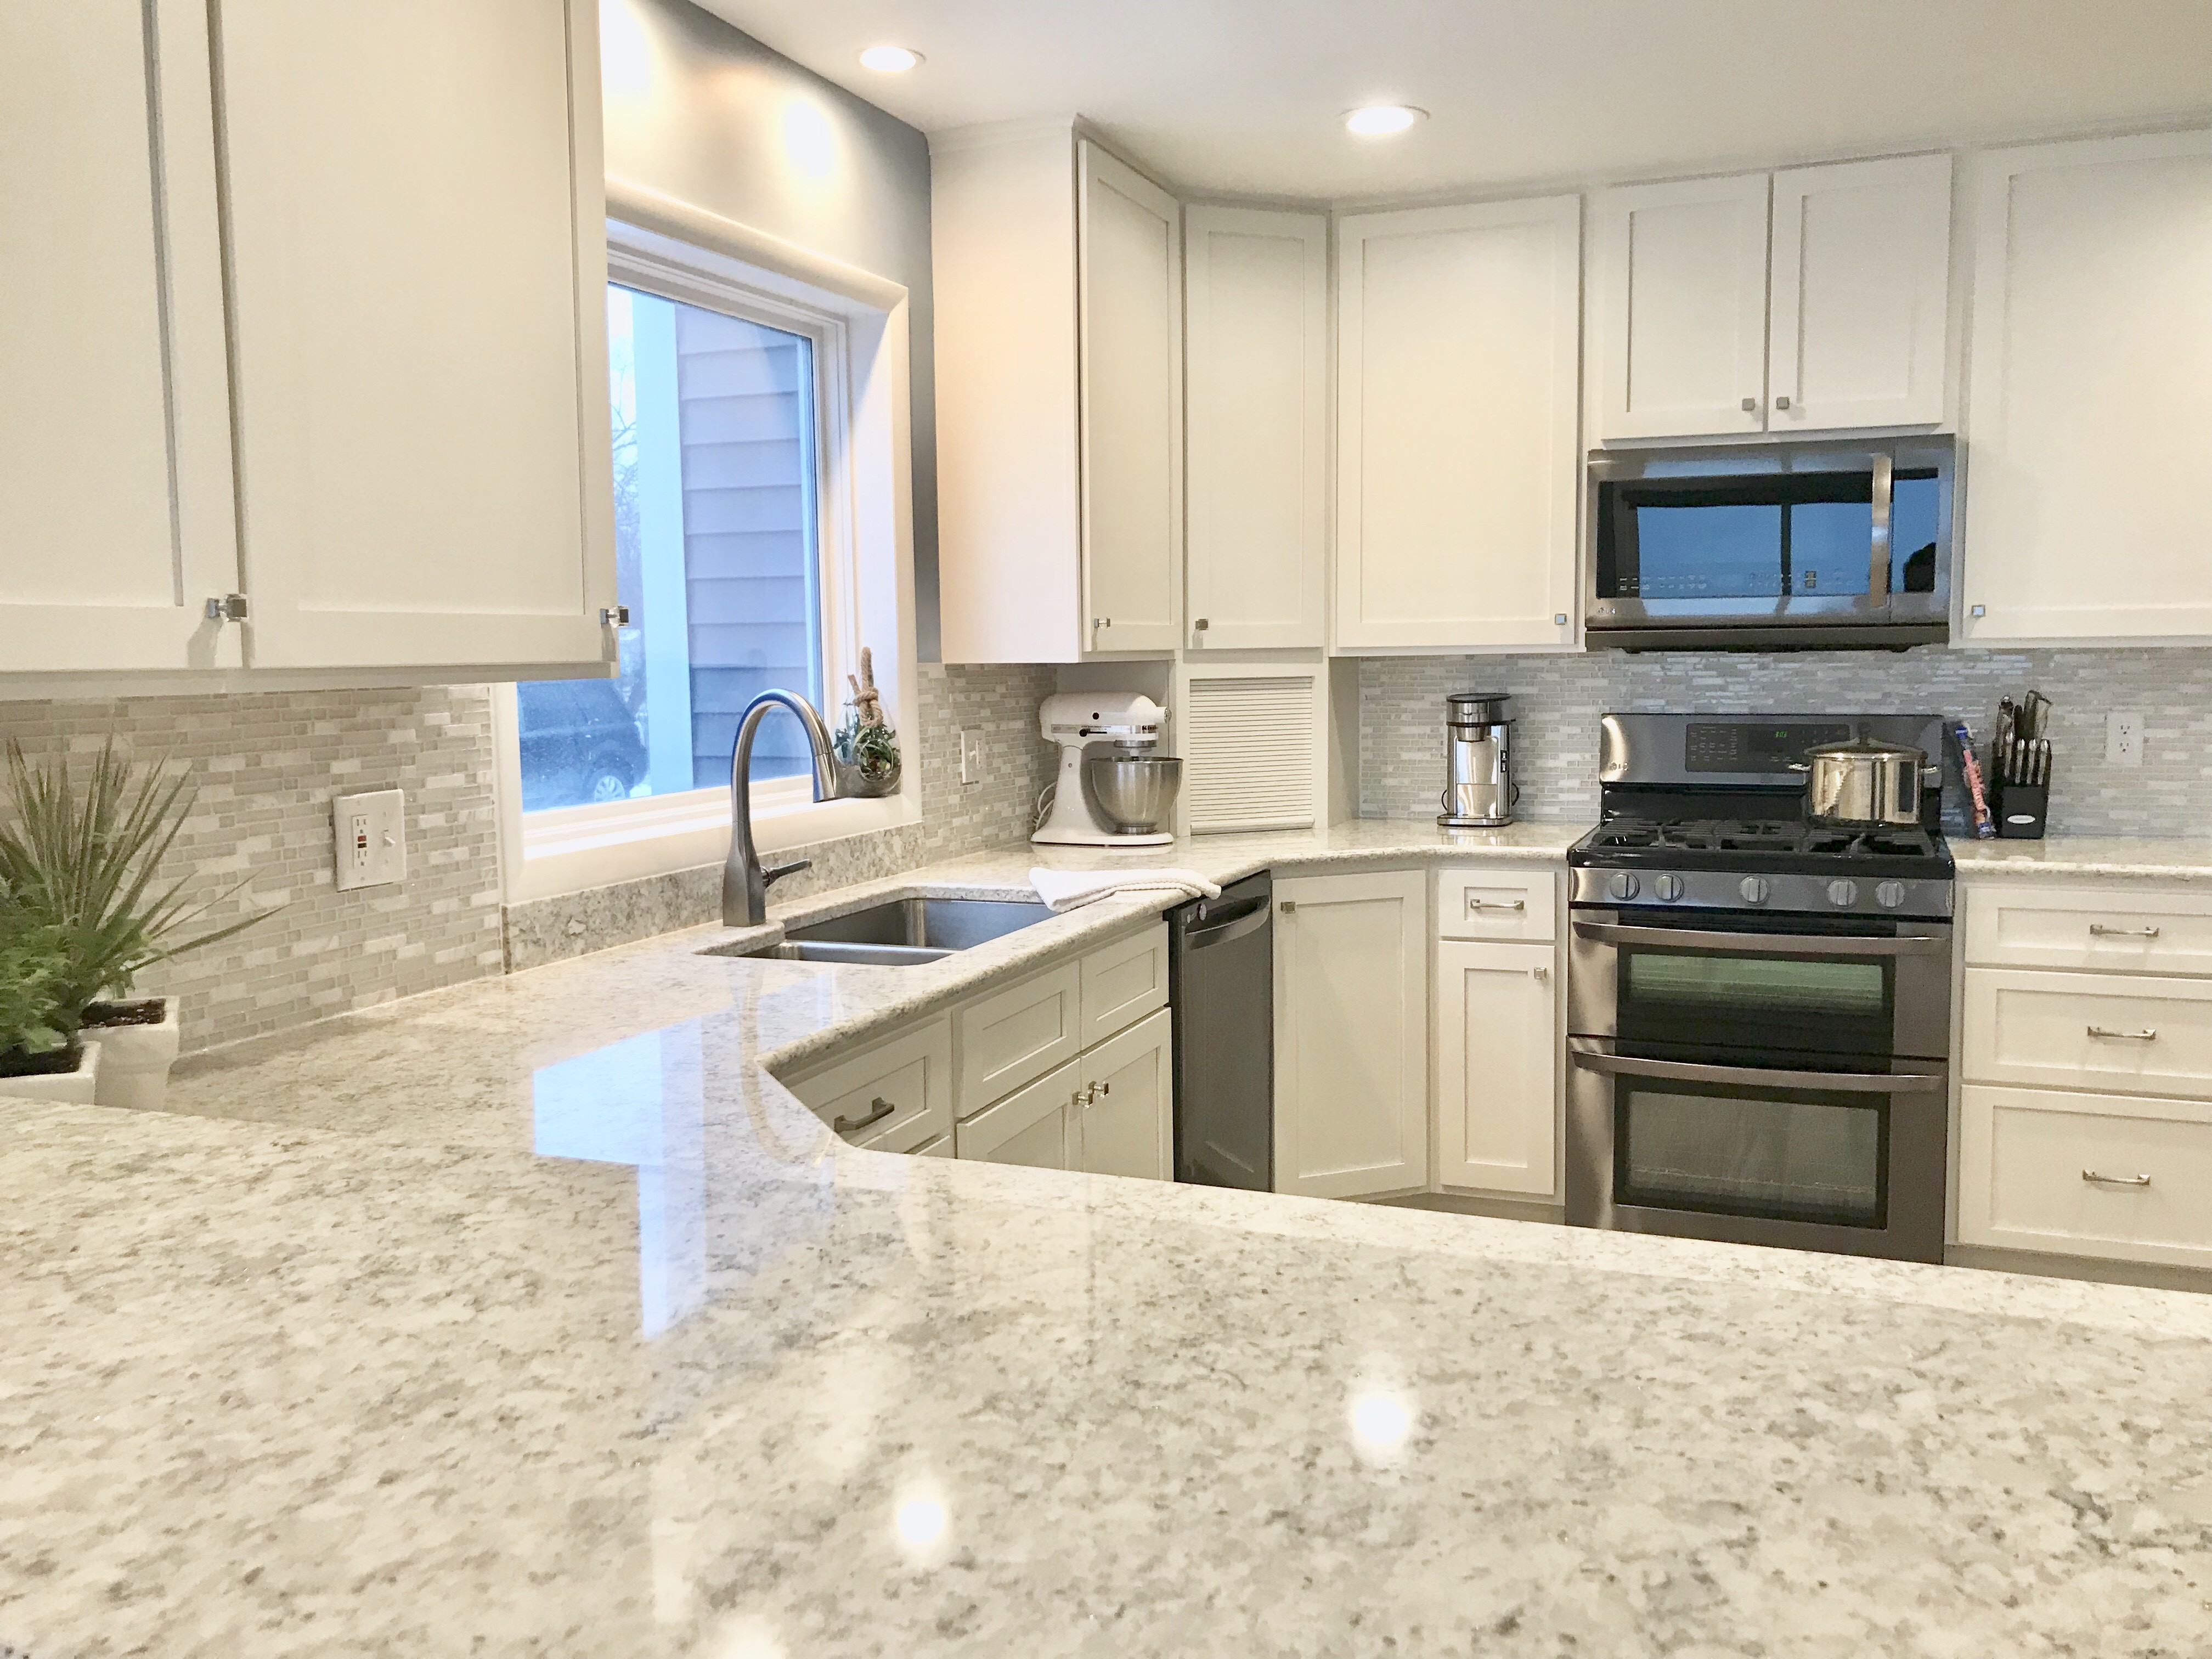 Tallahassee Kitchen & Bath Remodeling Team - best countertops, bathrooms, renovations, custom cabinets, home additions- 91-We do kitchen & bath remodeling, home renovations, custom lighting, custom cabinet installation, cabinet refacing and refinishing, outdoor kitchens, commercial kitchen, countertops, and more